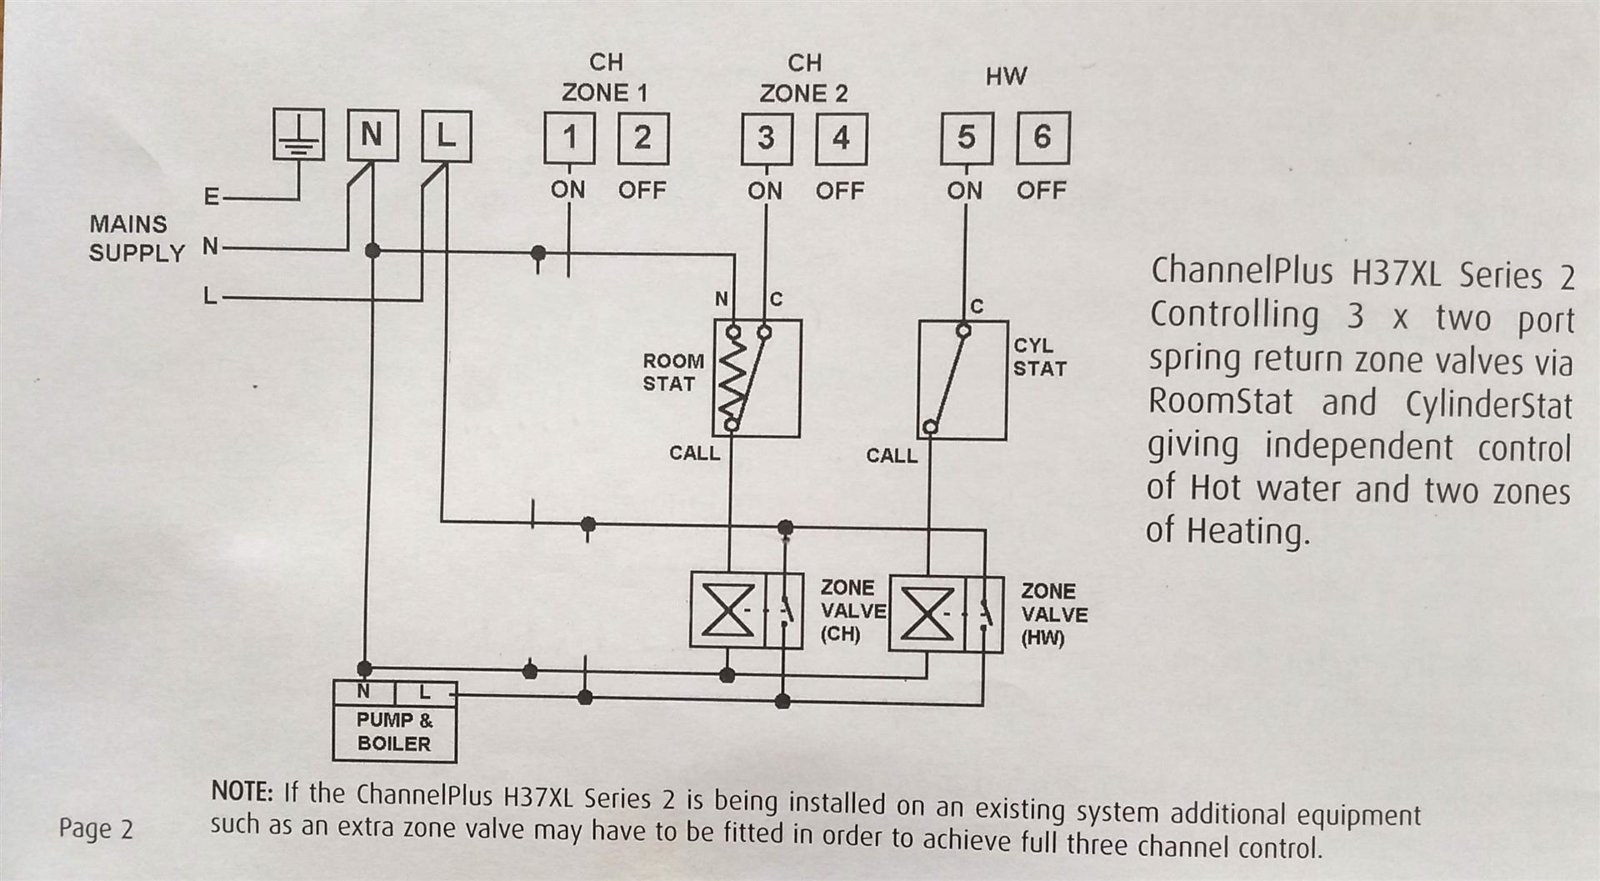 Can Hive Be Used To Replace A Thermostat That Switches 240v